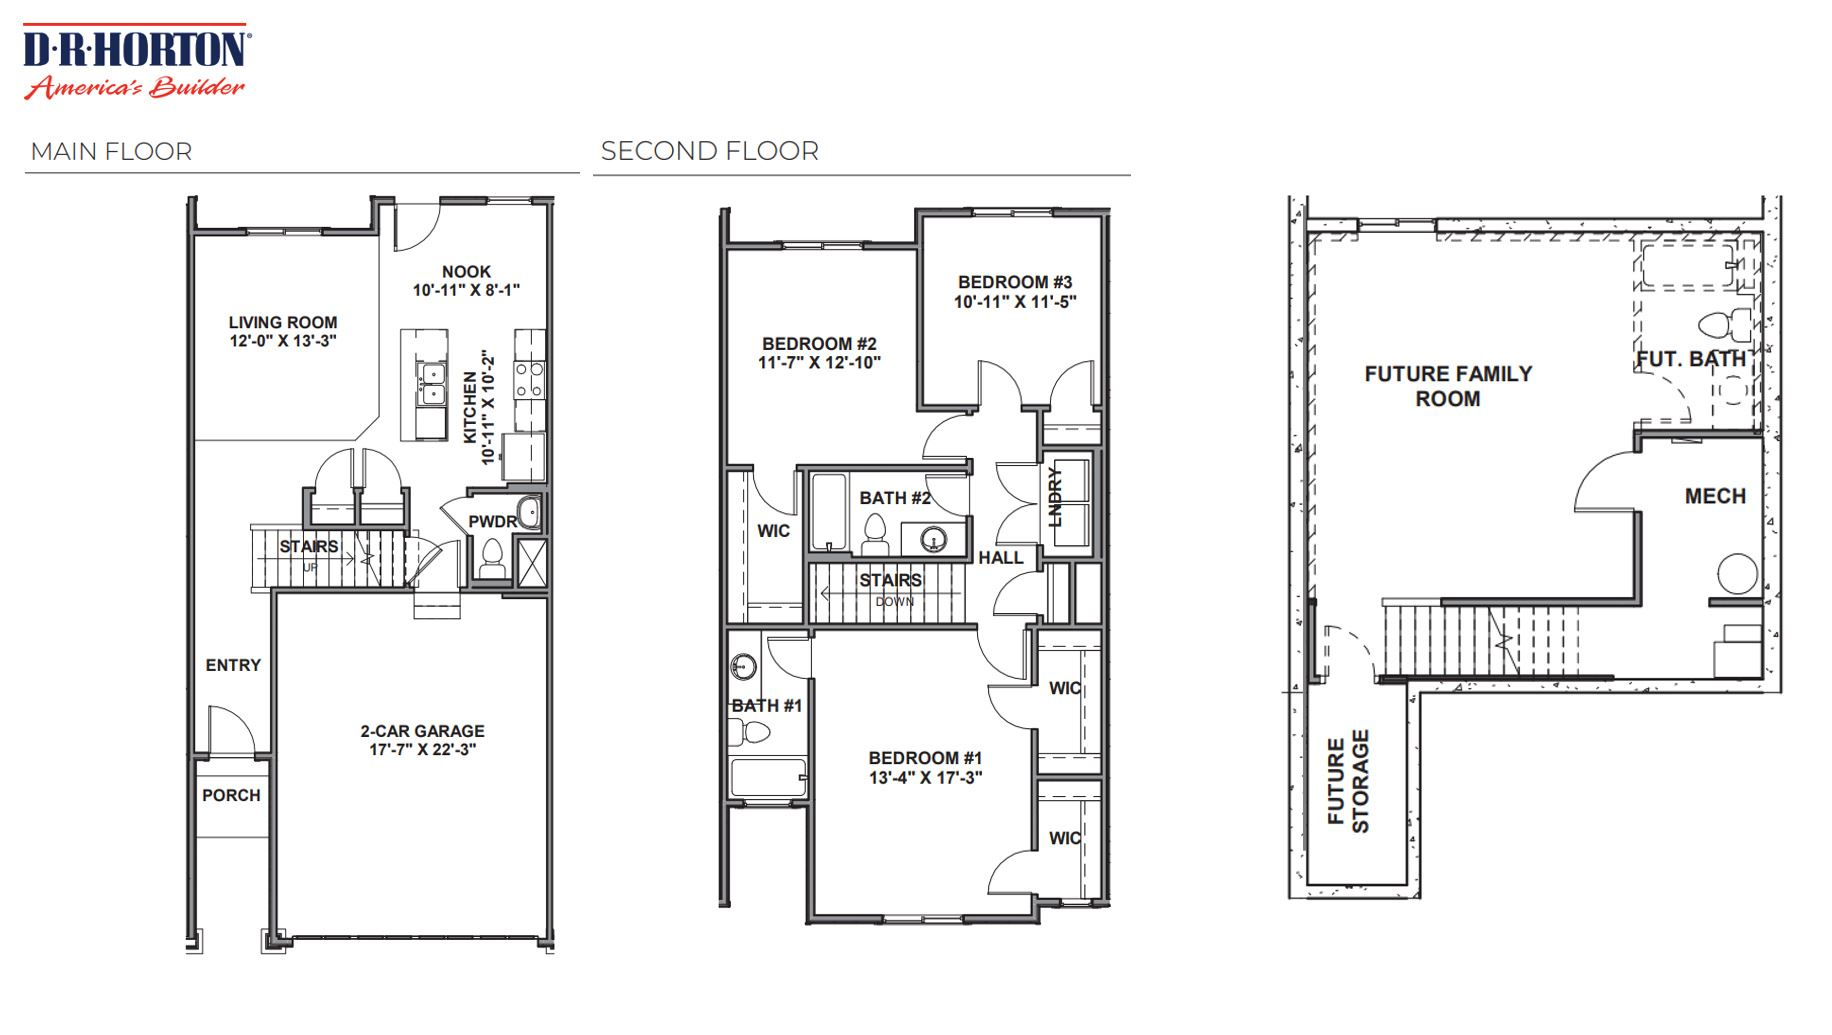 Photo of 3850 S BOWIE W DR #192, Magna, UT 84044 (MLS # 1748607)